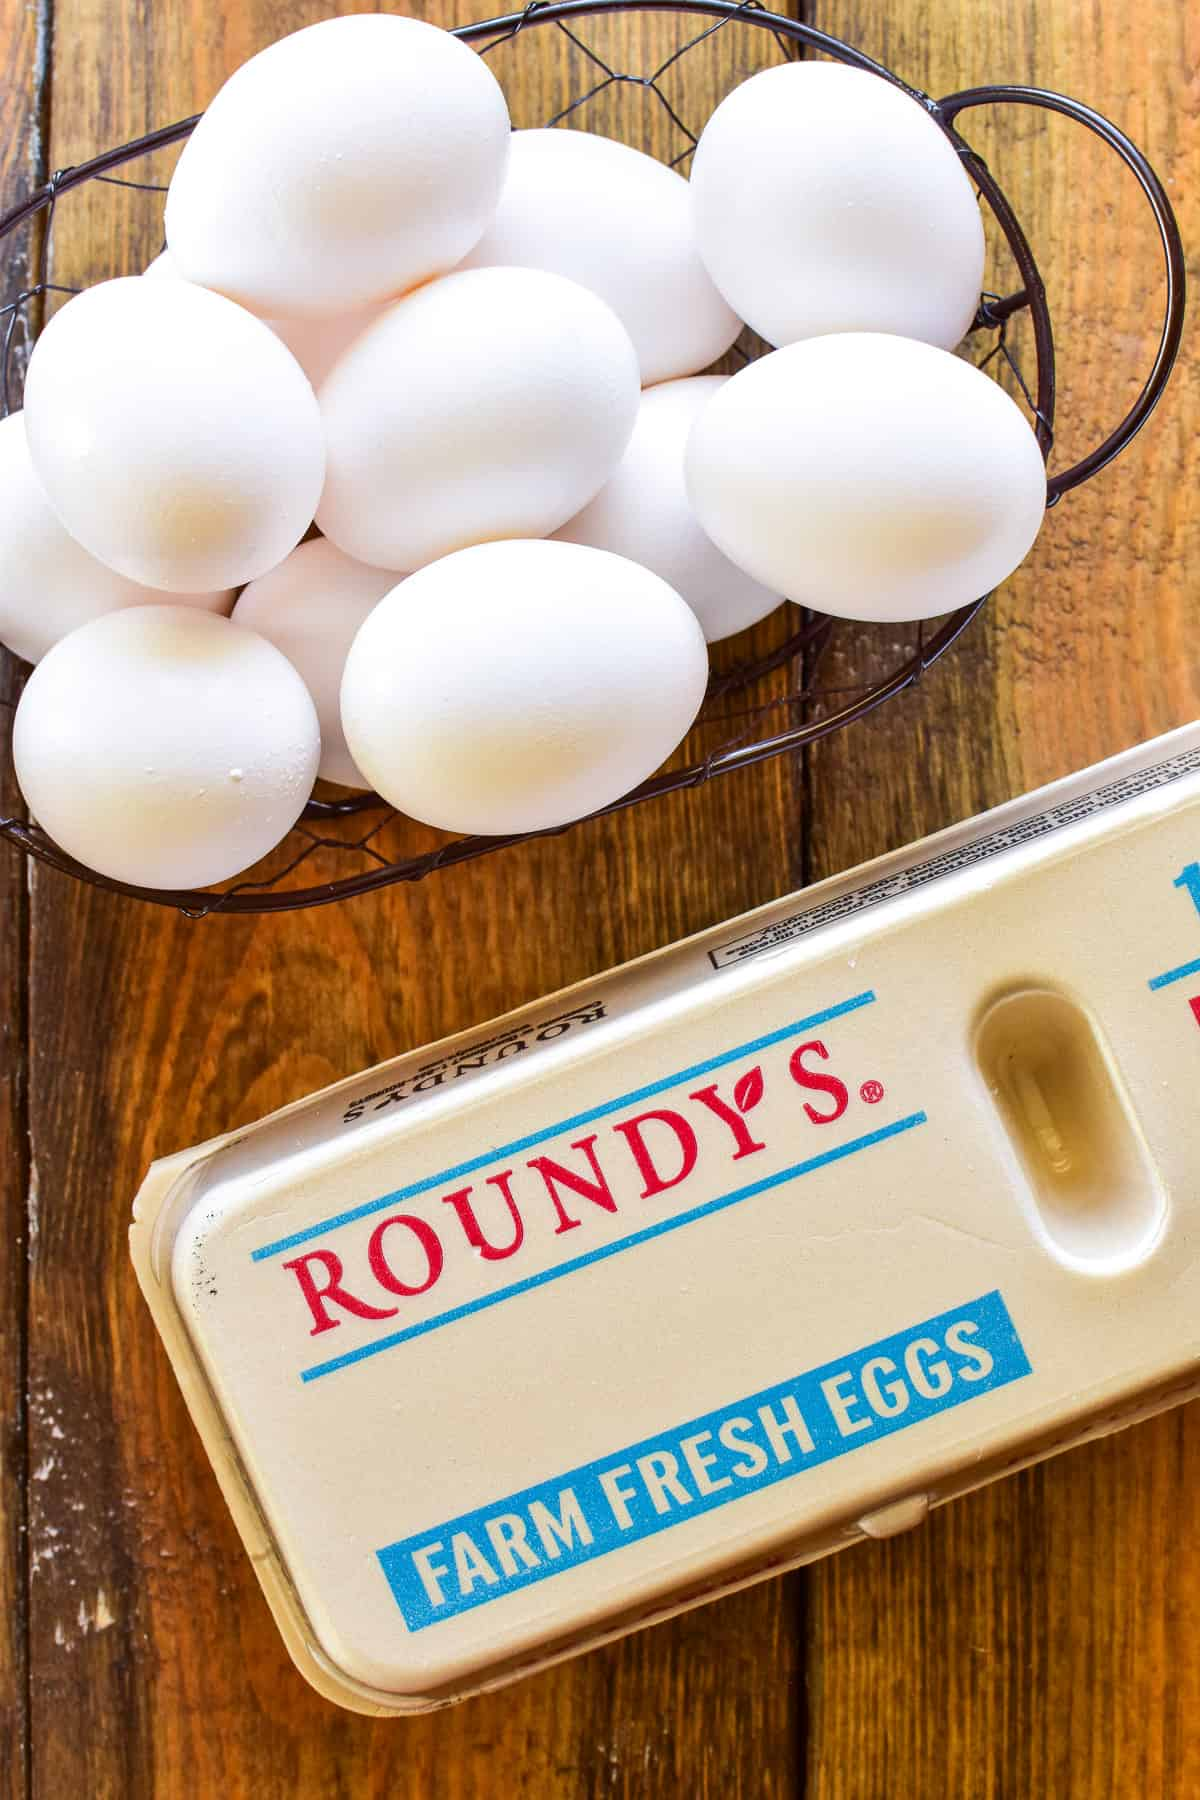 Roundy's egg carton and eggs